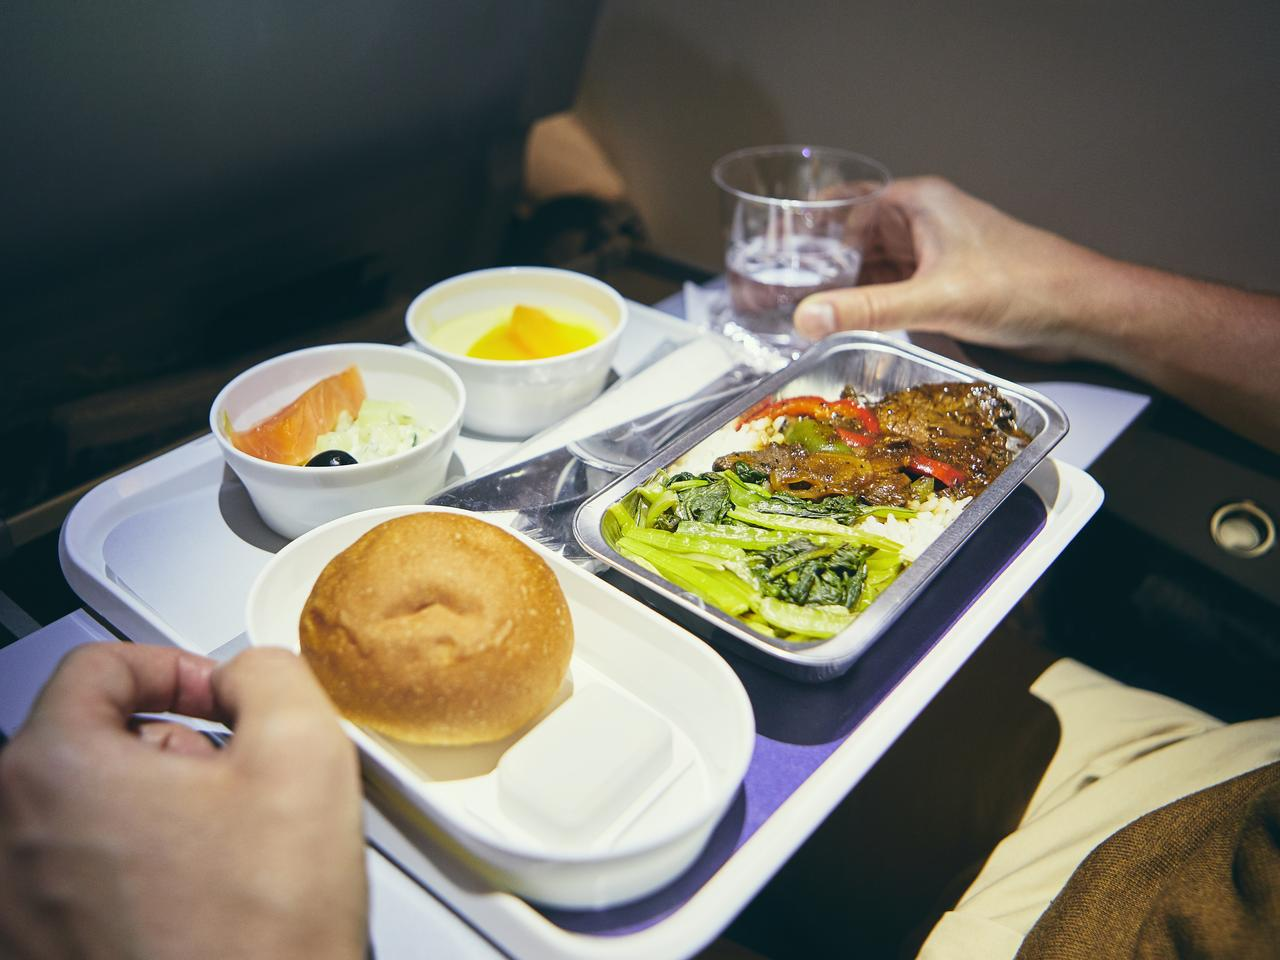 Traveling by airplane. Passenger enjoying dinner in economy class during long haul flight.